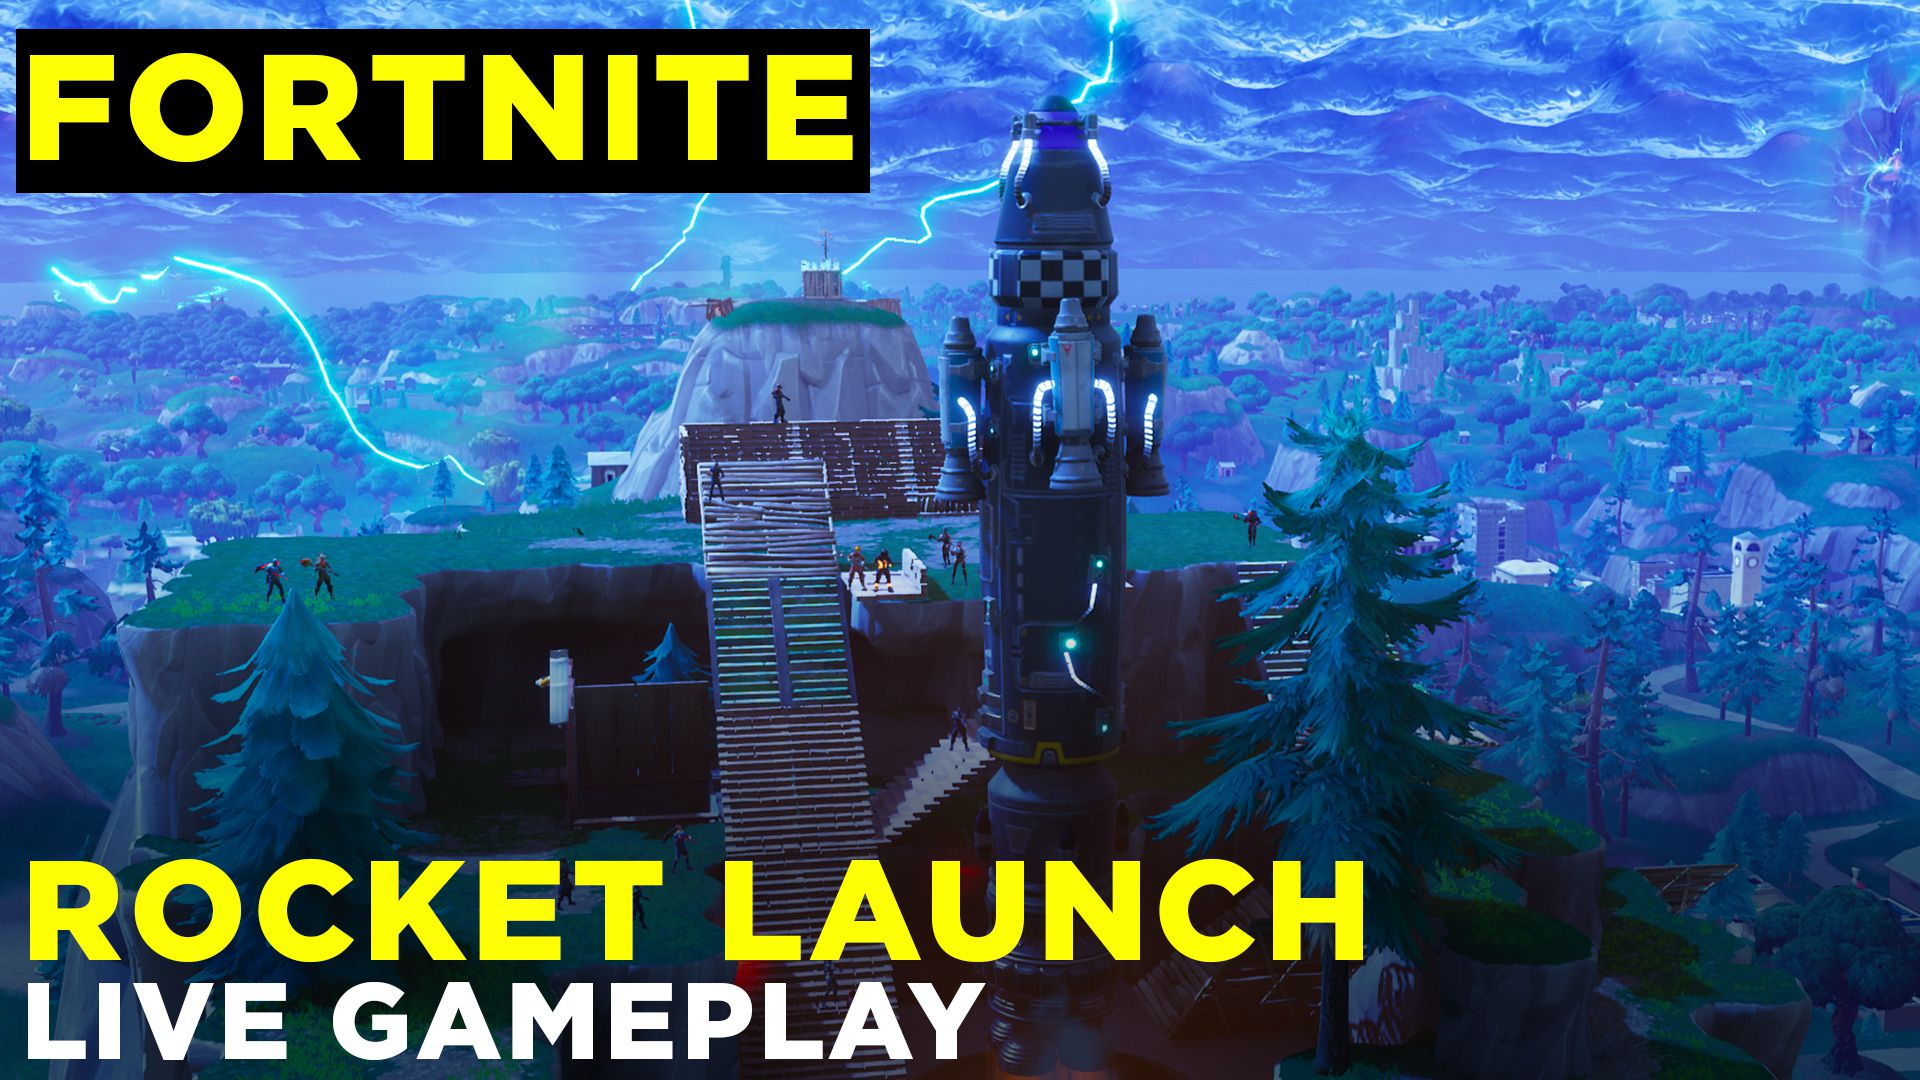 Fortnites Rocket Launch Created A Dimensional Rift In The